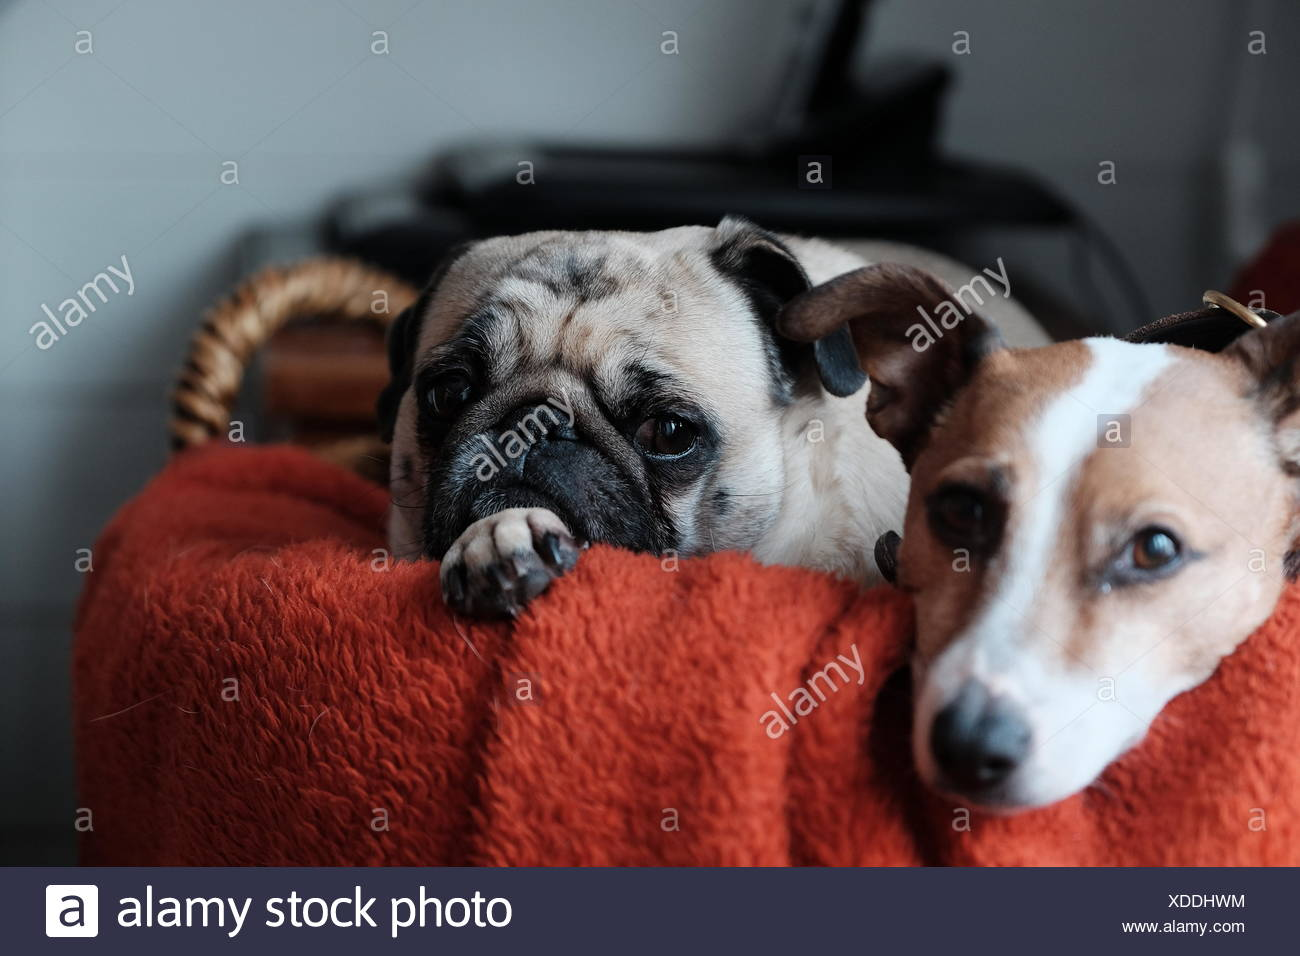 Portrait Of Puppies In Basket At Home - Stock Image